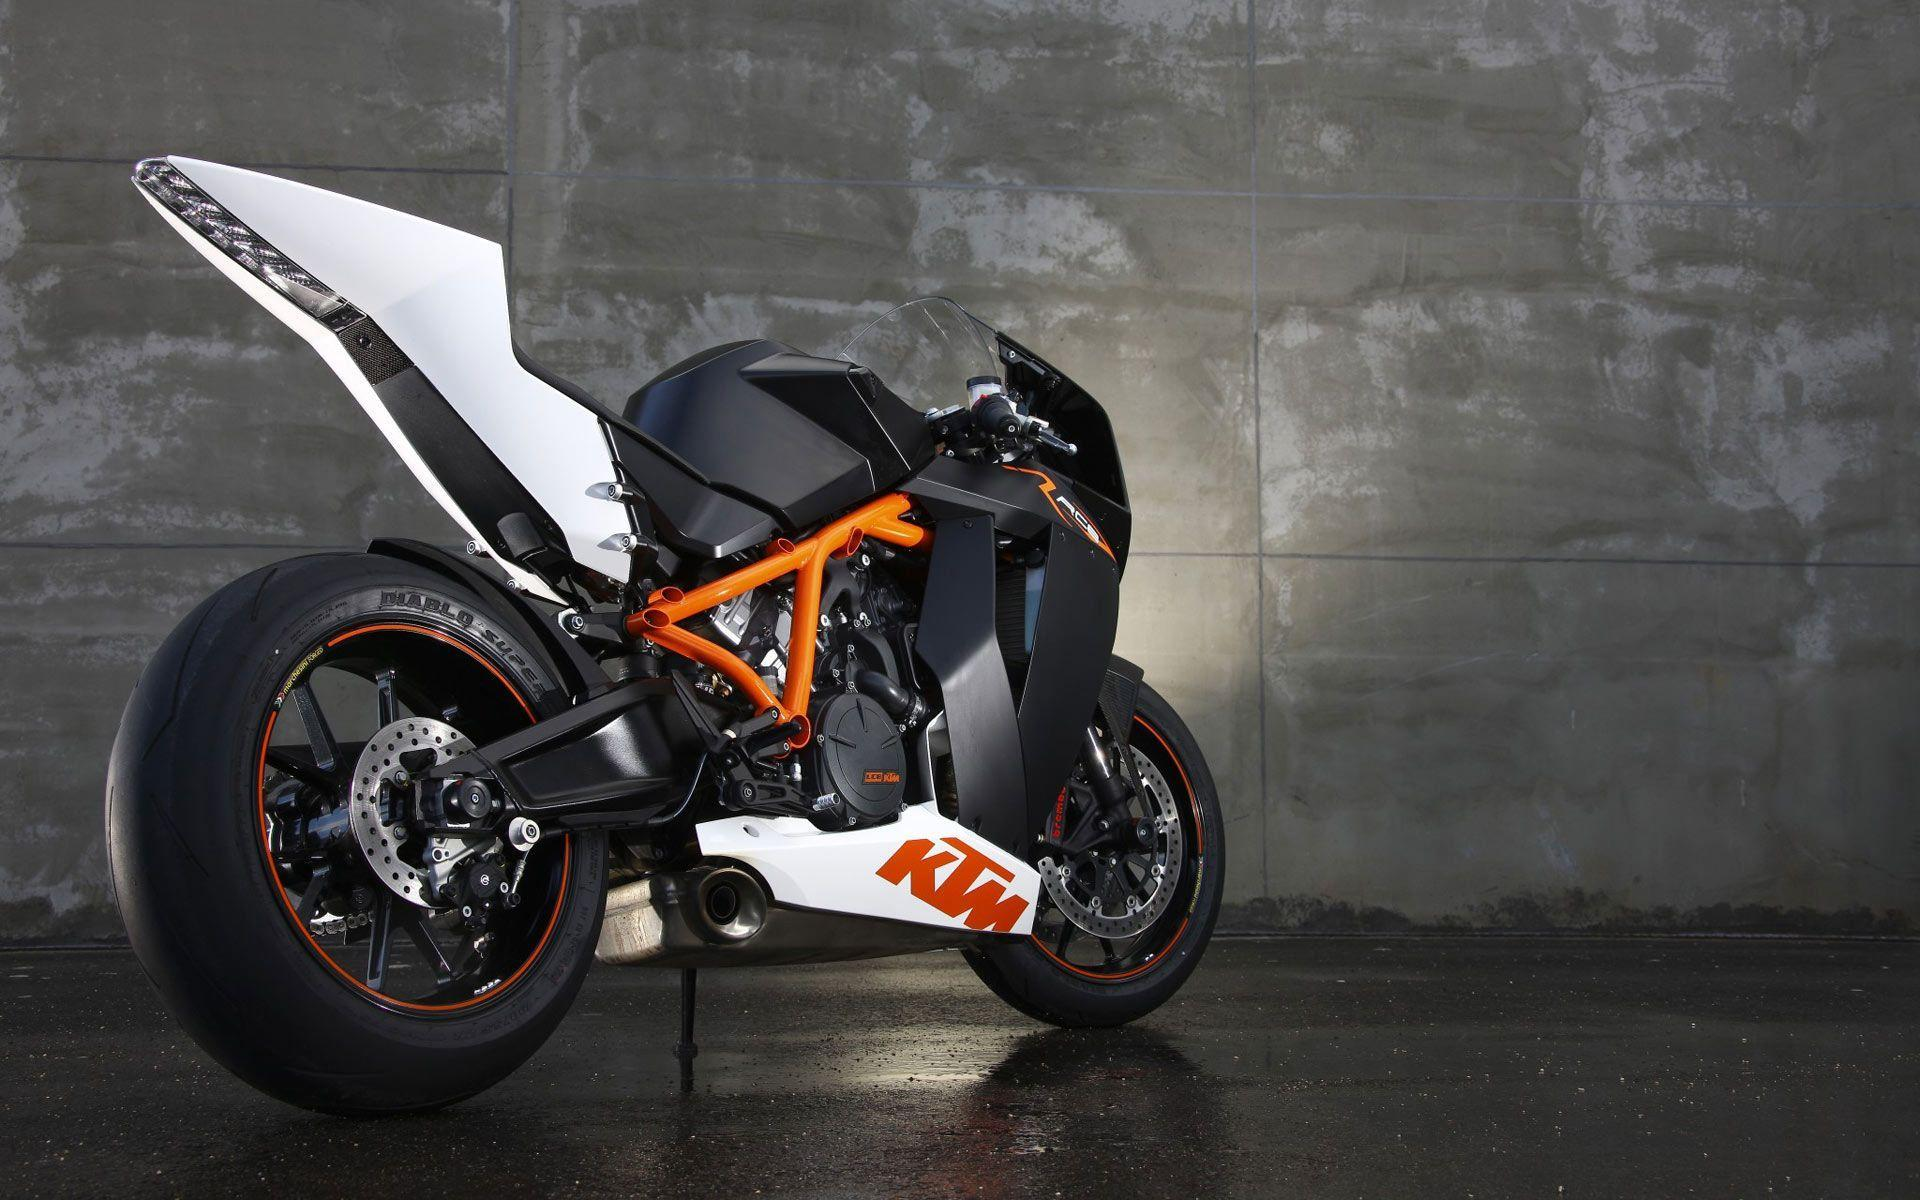 Ktm 1190 Rc8 R HD Wallpapers Free HD Wallpapers